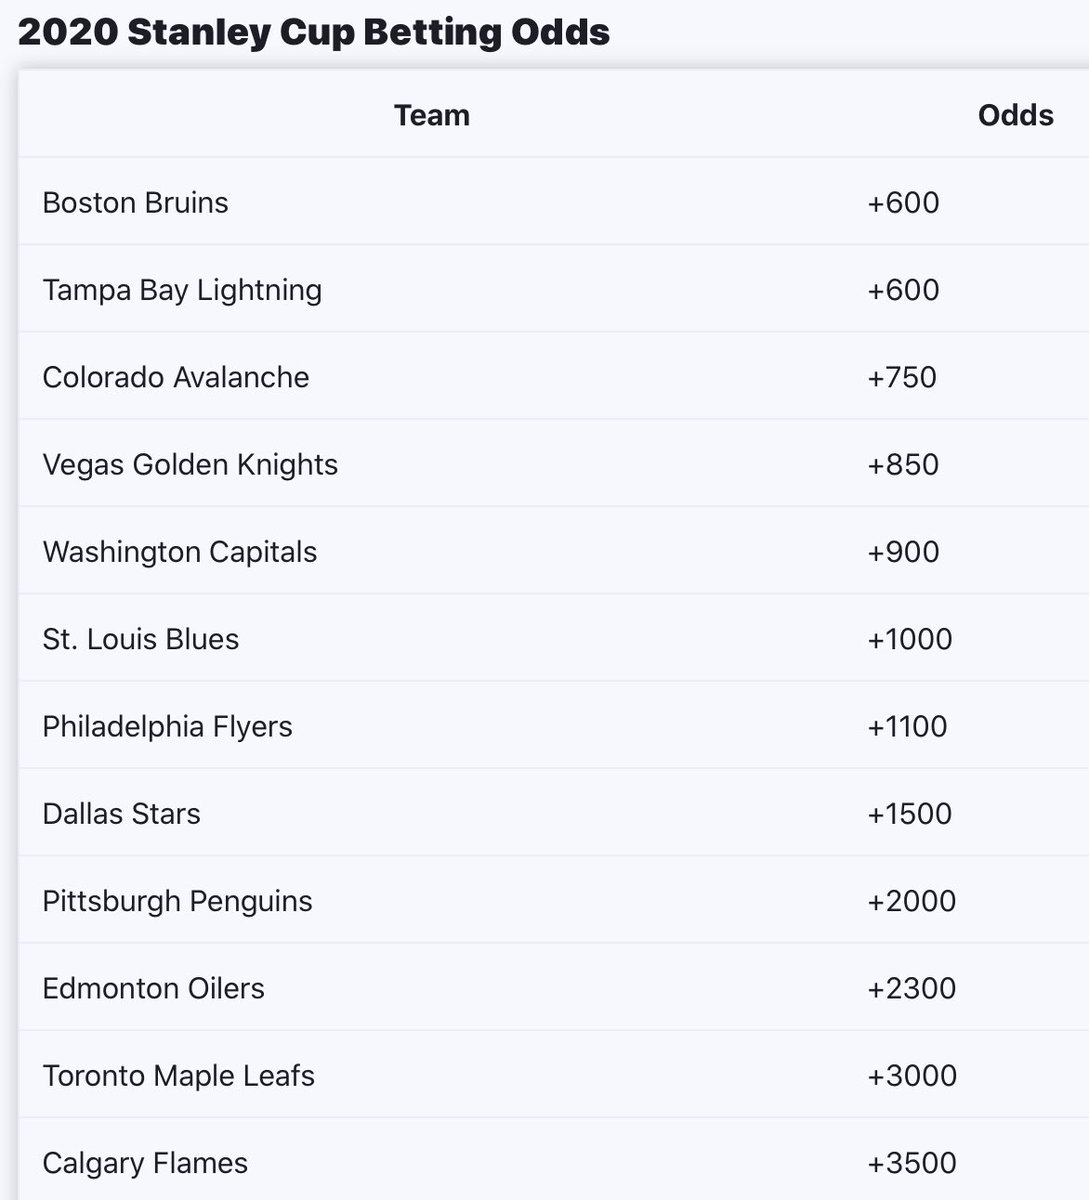 #RT @realwillmeade: Updated 2020 Stanley Cup Betting Odds (Blues were 40 to 1 last year at start of playoffs)pic.twitter.com/z3exzygtQD